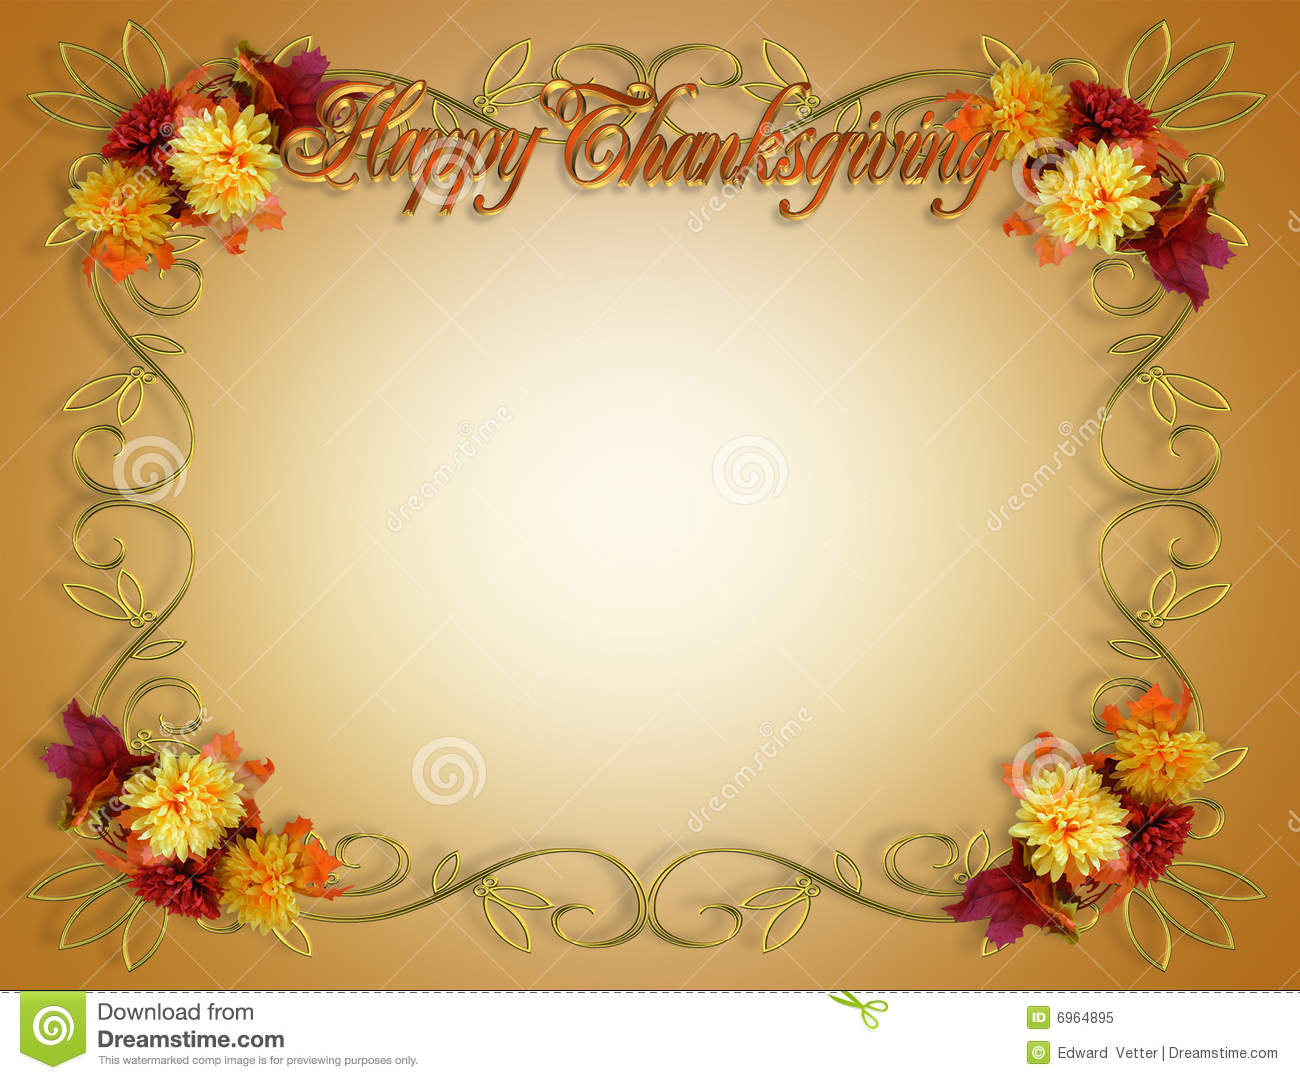 Thanksgiving Fall Autumn Border Royalty Free Stock Photo